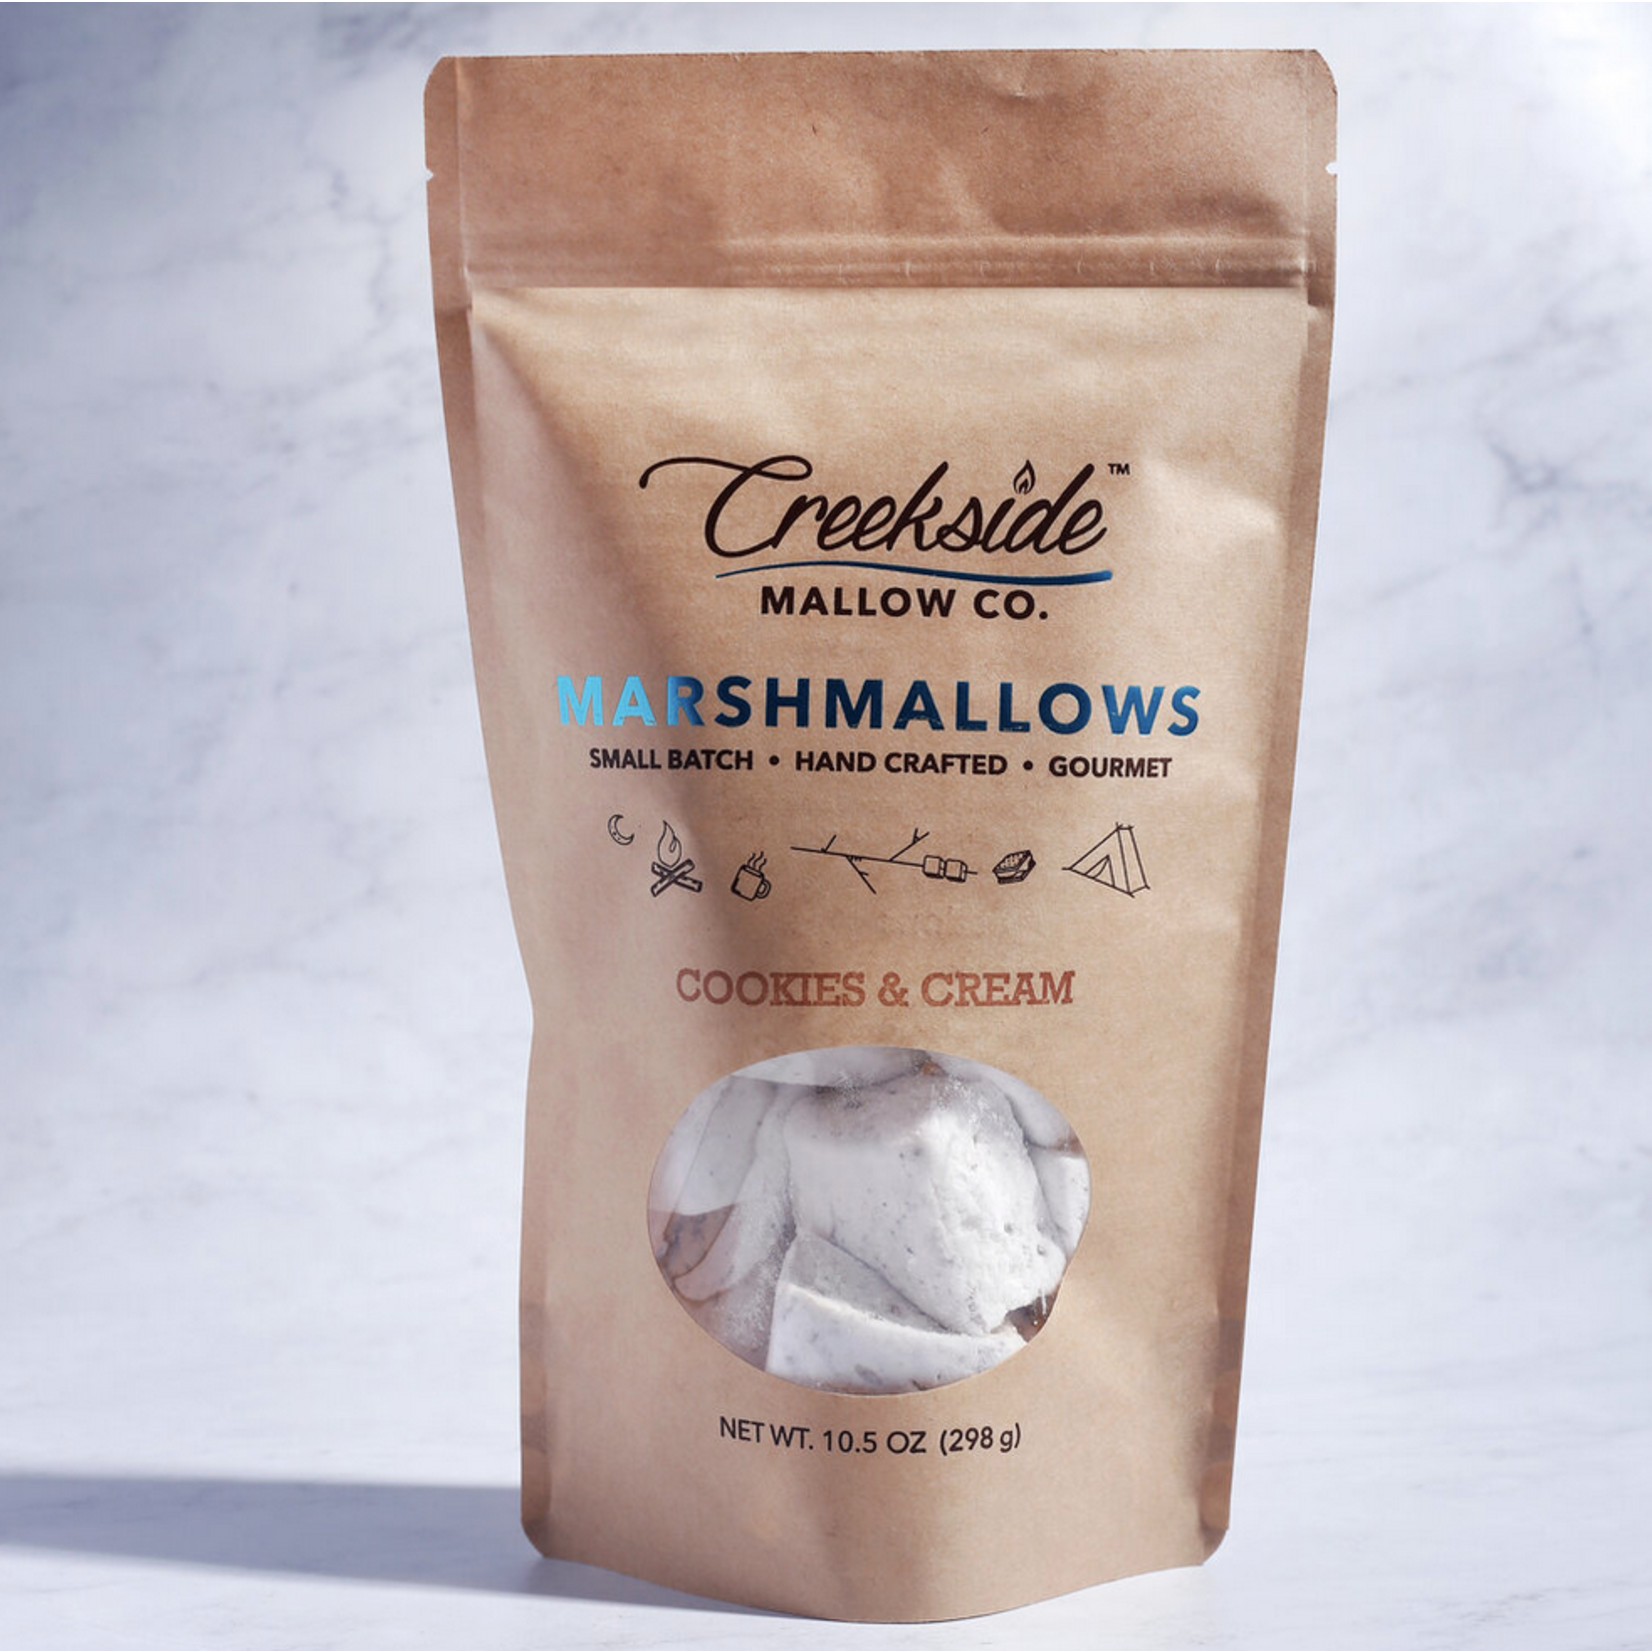 Creekside Mallow Co. / Fireside Mallow Co. 12ct. Marshmallow Bags